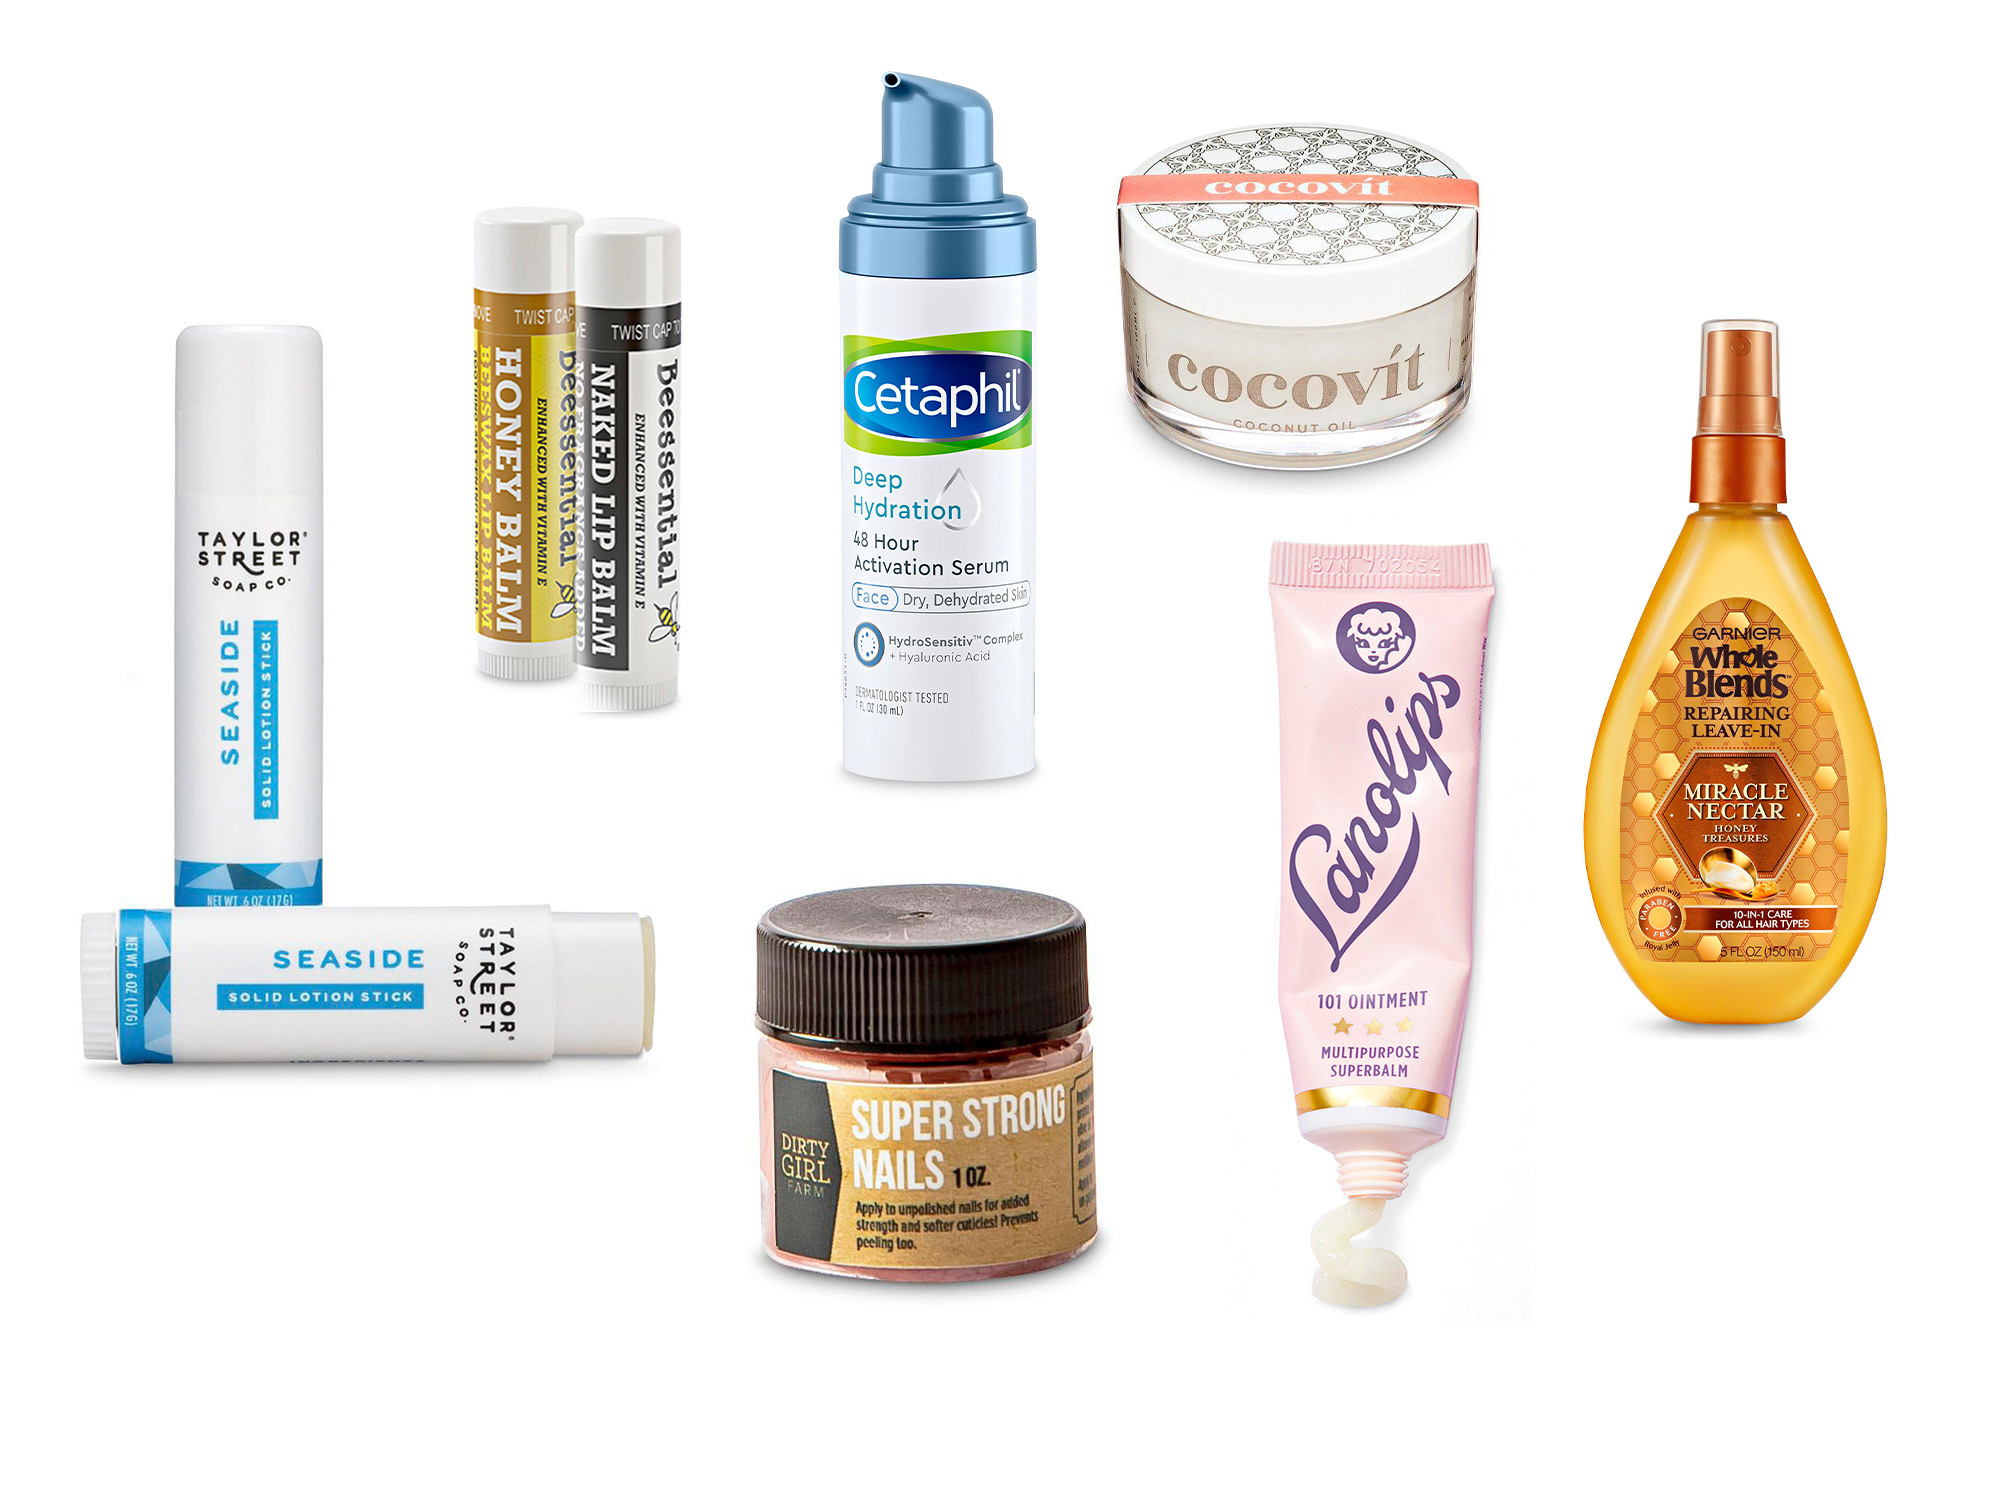 Moisturizer products